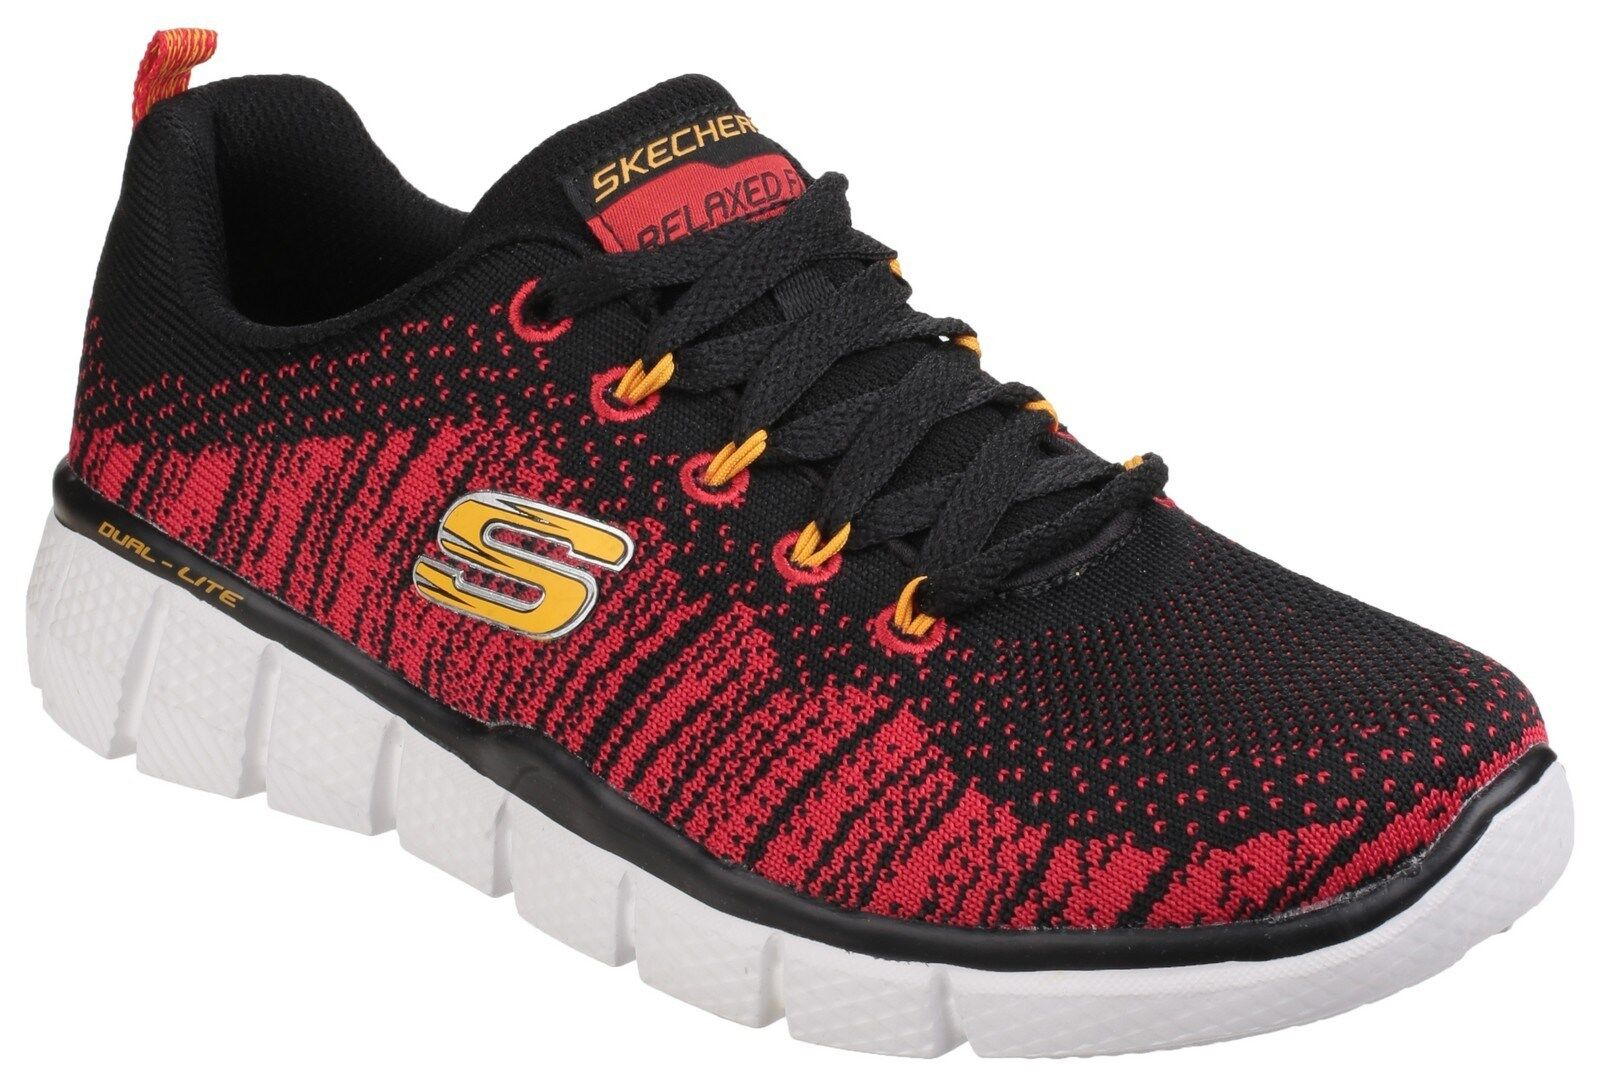 hot sale online 7d8d3 49108 Skechers Equalizer 2.0 Perfect Game Kids Boys Athletic Trainers Shoes  UK10.5-6